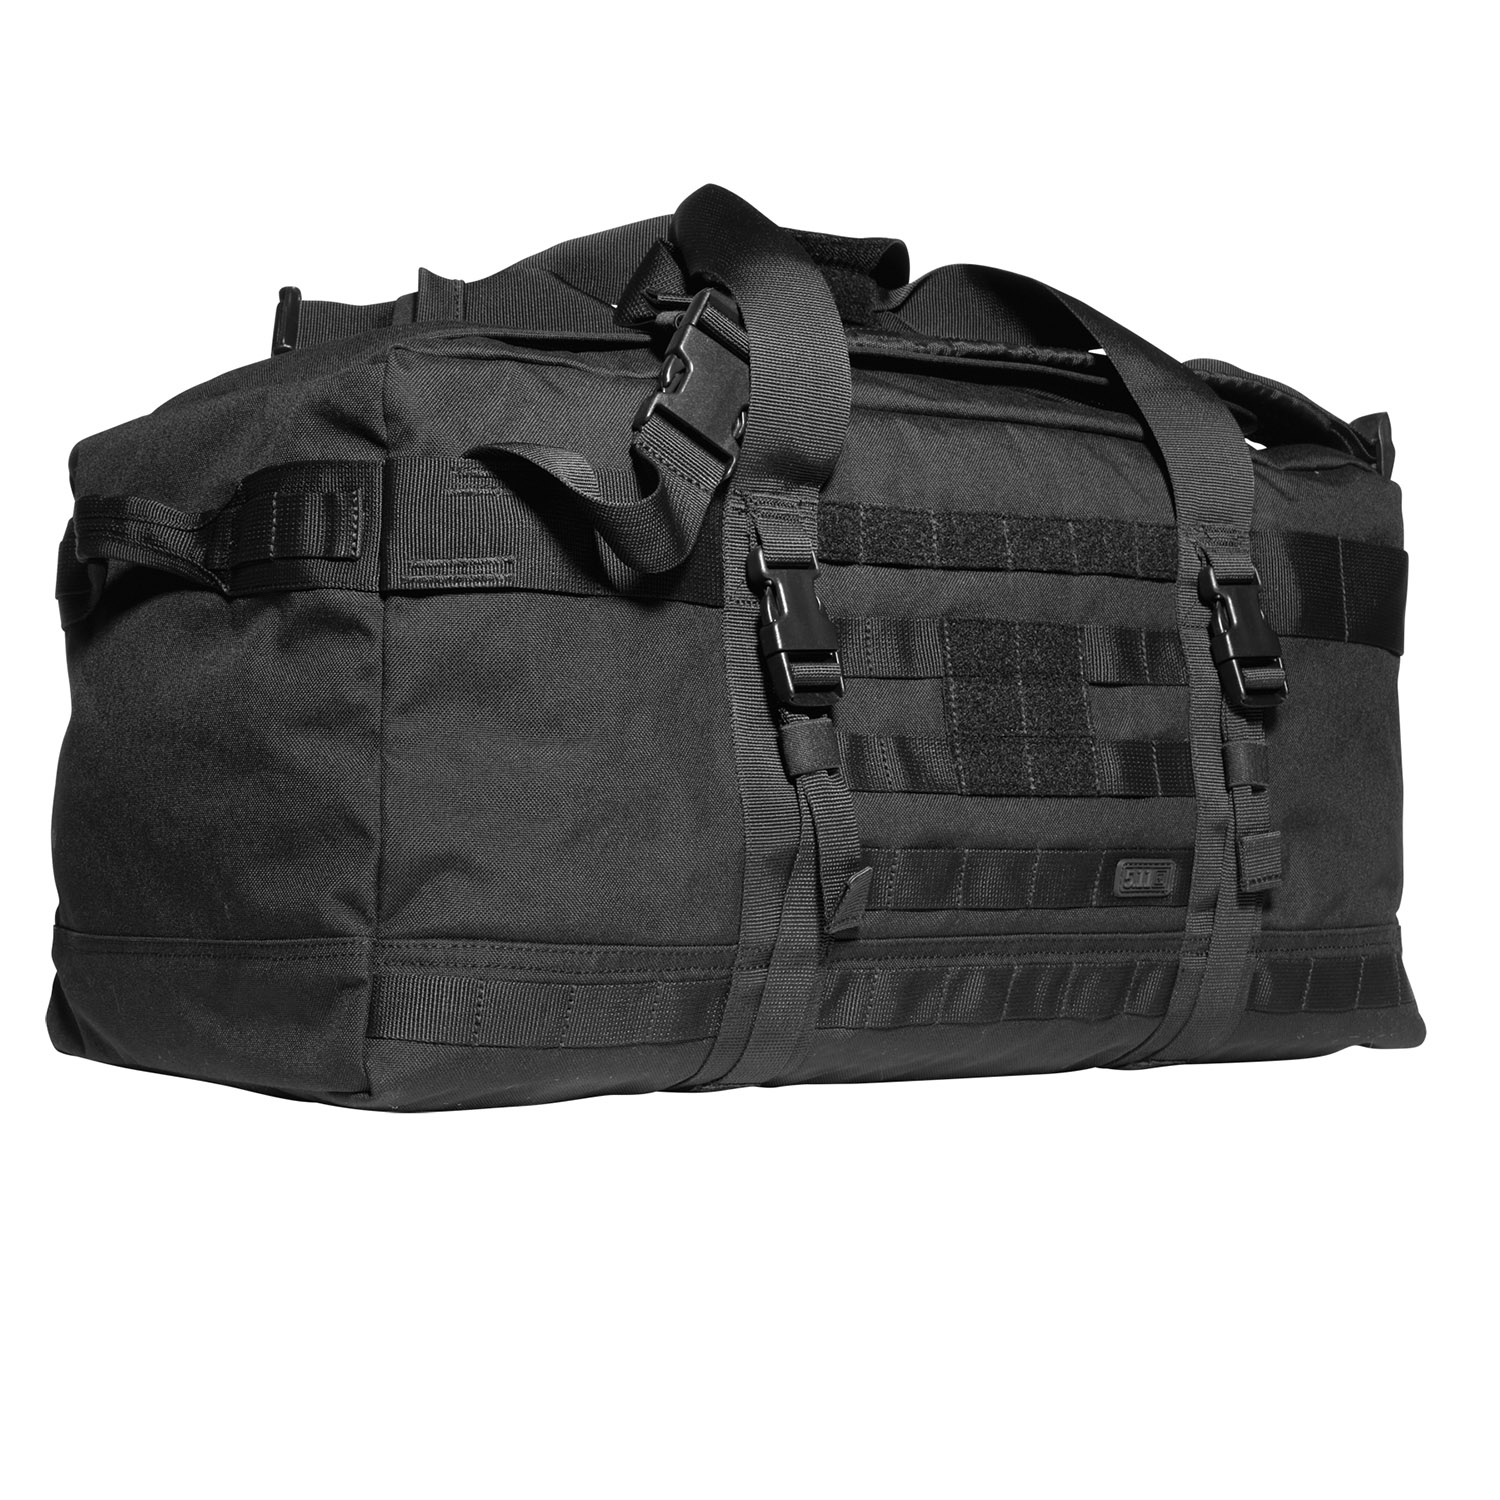 5.11 Tactical Rush LBD Lima Duffle Bag